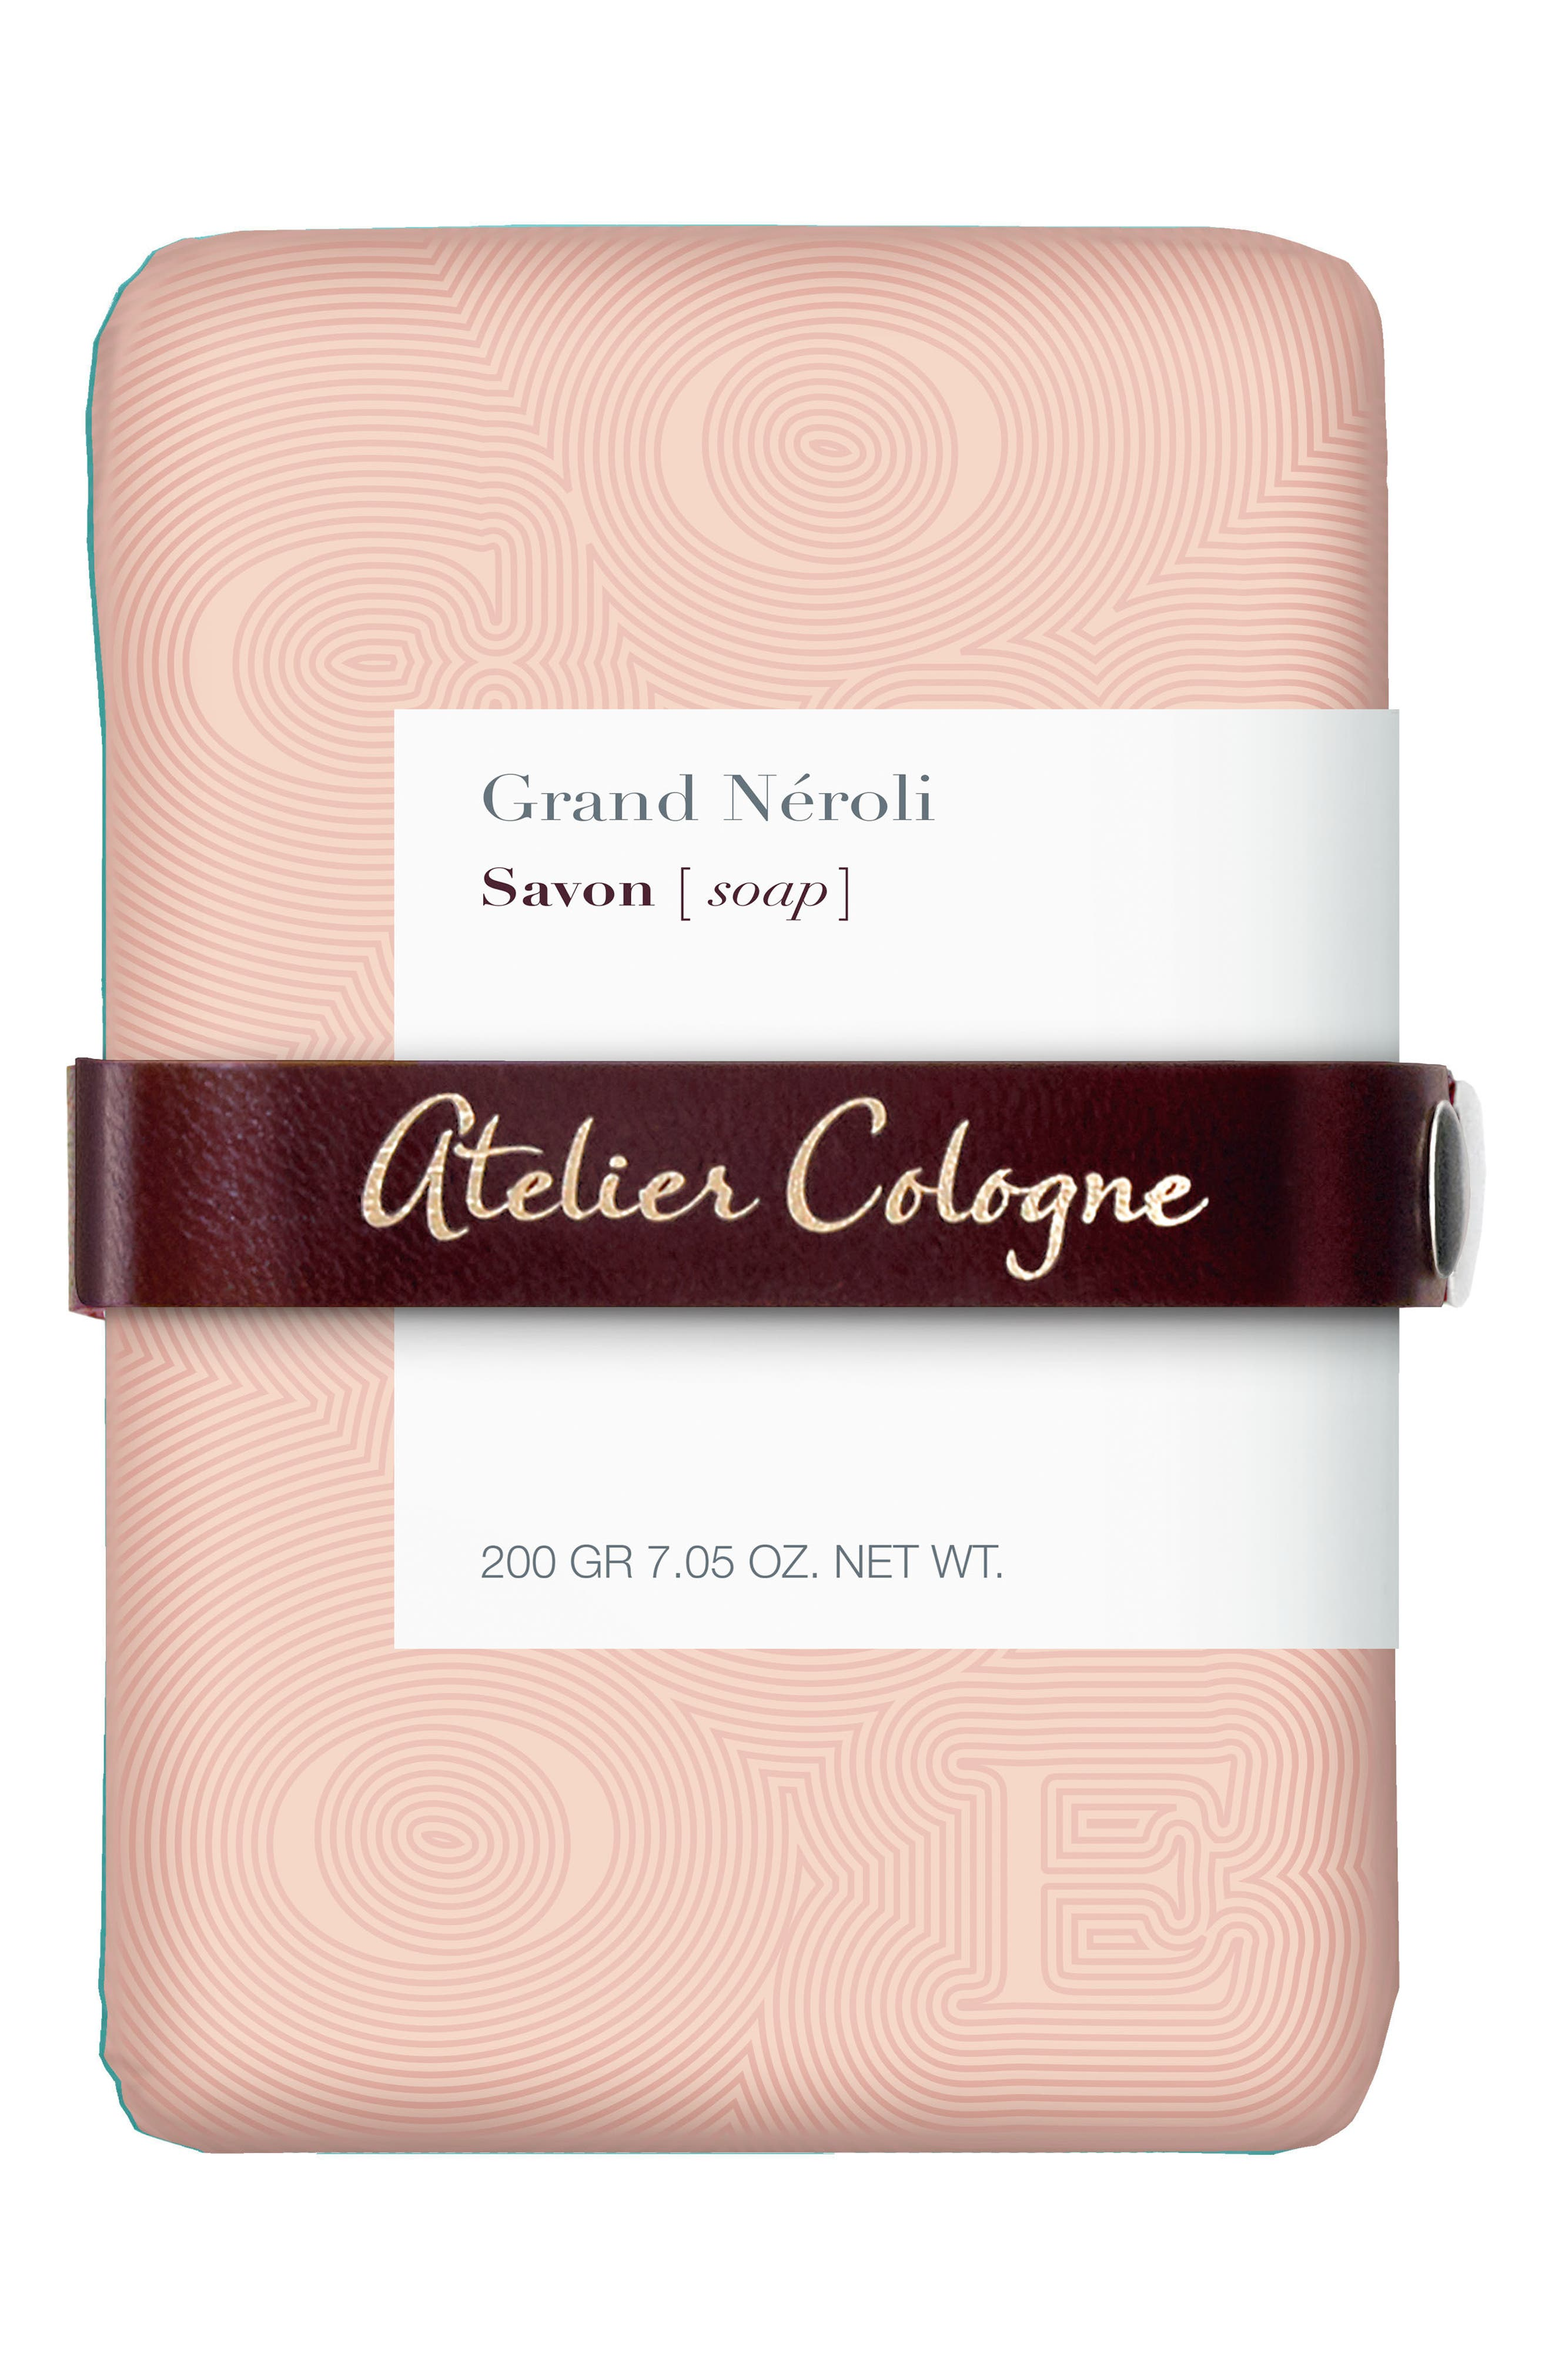 Atelier Cologne Grand Néroli Soap